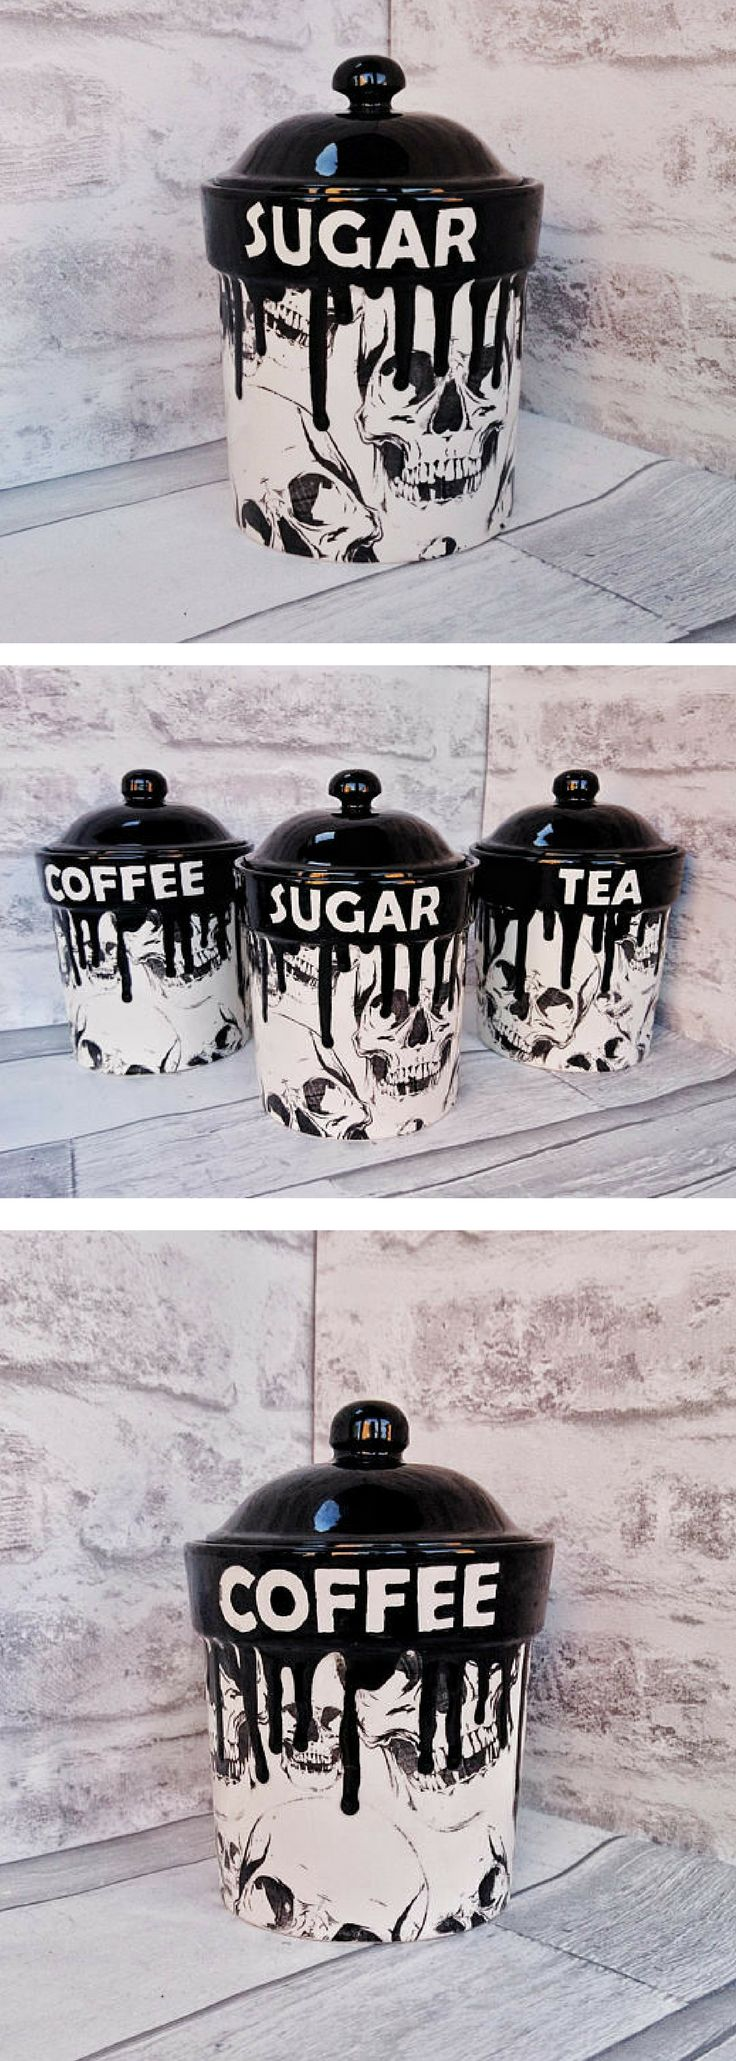 Skull Storage Canisters, Tea Coffee Canister, Sugar Jars, Storage Pots, Ceramic Pot, Container, Kitchen flour Pot, Hand Painted, Gothic Goth #ad